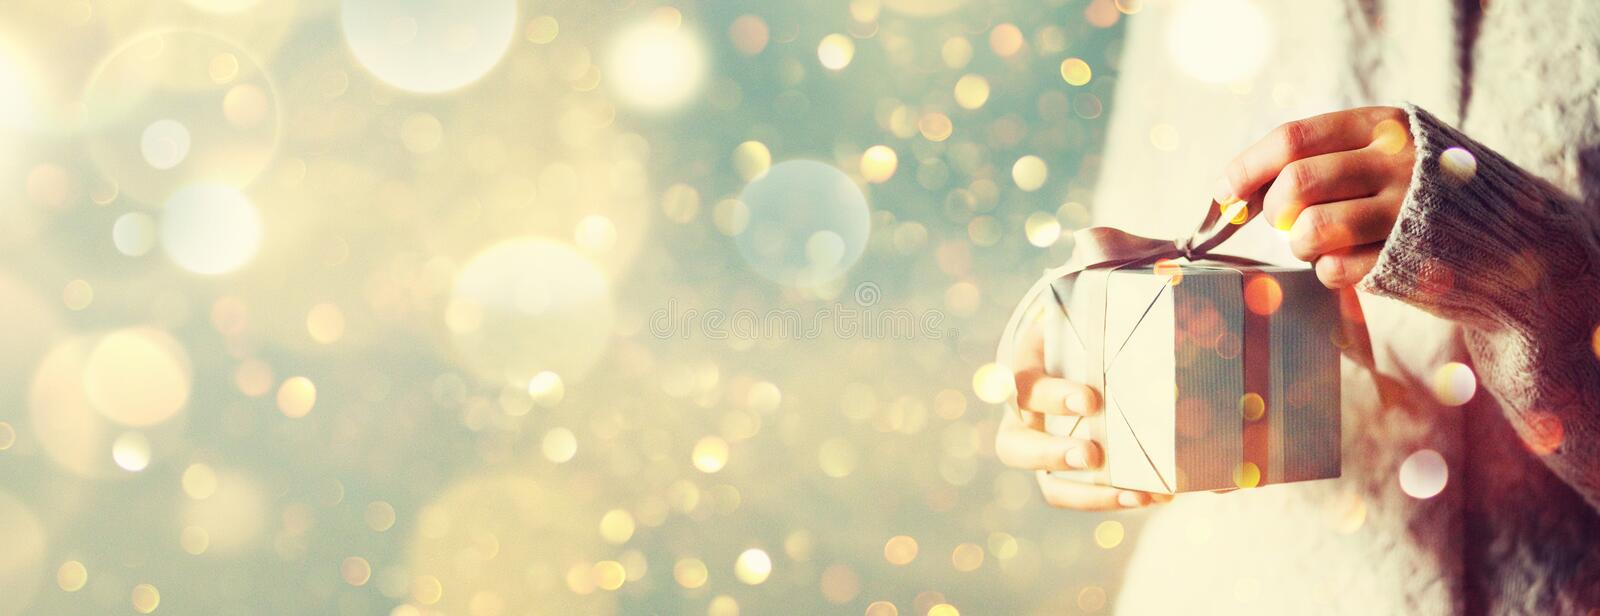 Shimmer background with snow, light bokeh. Woman hands opening gift box. Christmas, new year, birthday concept. Banner, copy space royalty free stock photo